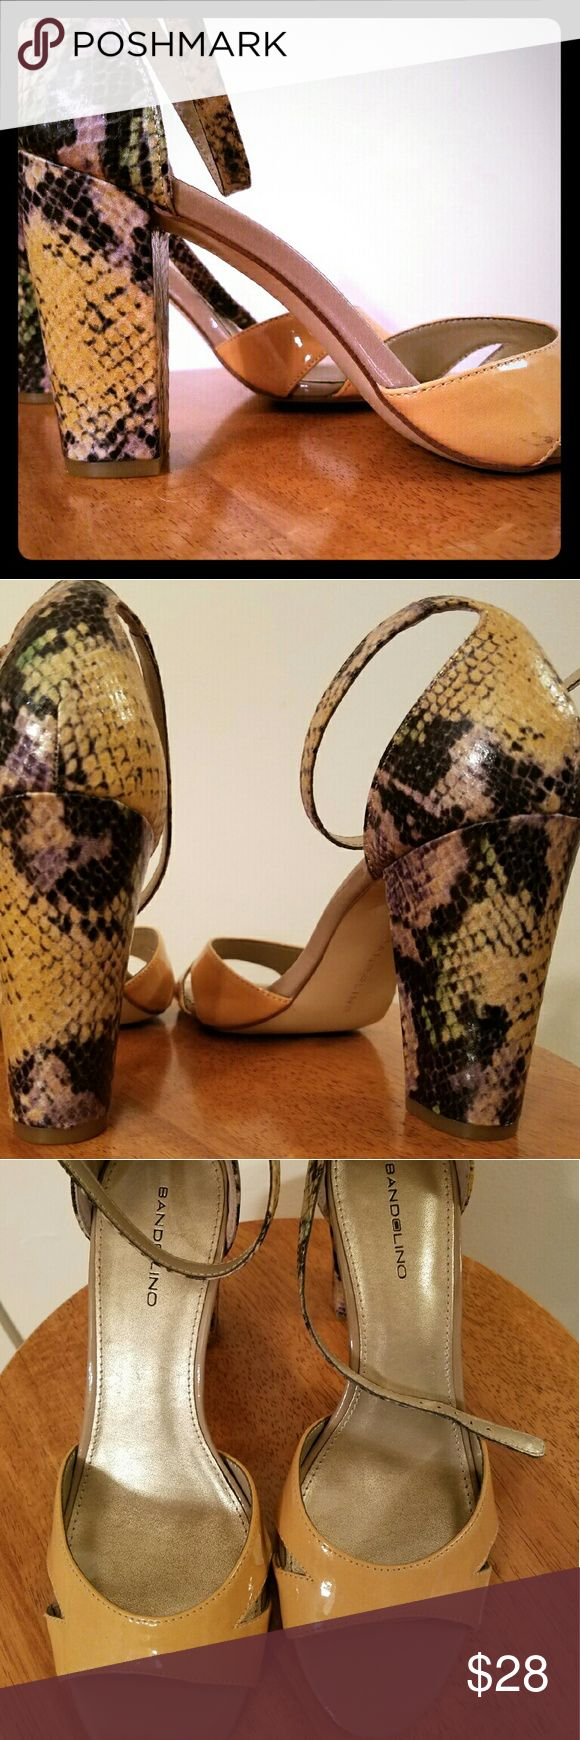 """Beautiful new heels Bandolino snake skin patterned heels (colors here are yellow, green, black and touch of purple) the front is more of a mustard/creamy tan color. Neutral in front, party in back ;) The heel is 3 & 1/2"""" tall. These look beautiful with the green and cream colored LLR Julia dress or strapy BCBGeneration dress also for sale in my closet. Bandolino Shoes Heels"""